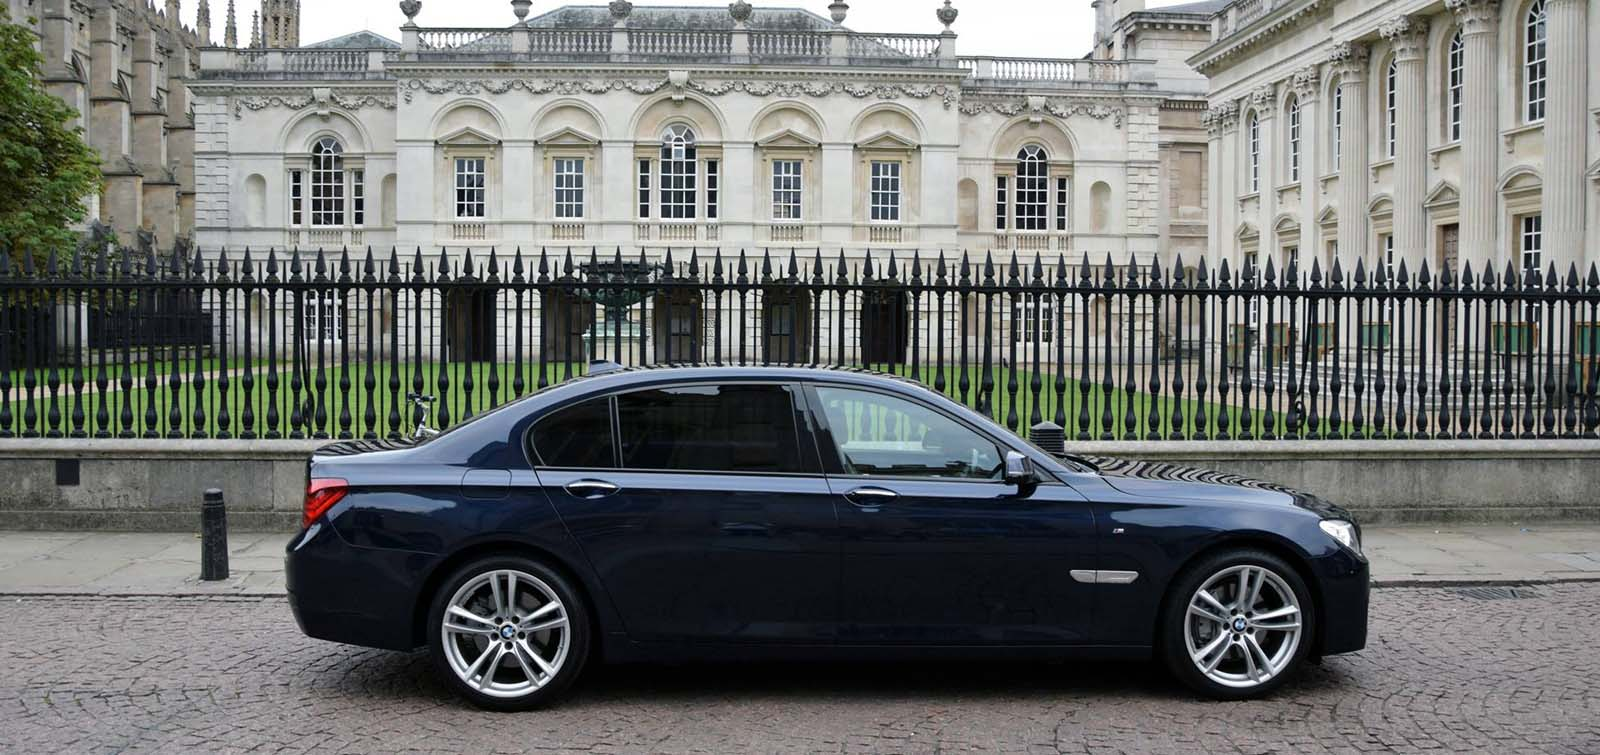 BMW Series 7 Luxury Cars Chauffeur Drive Cambridgeshire Private Hire Taxi